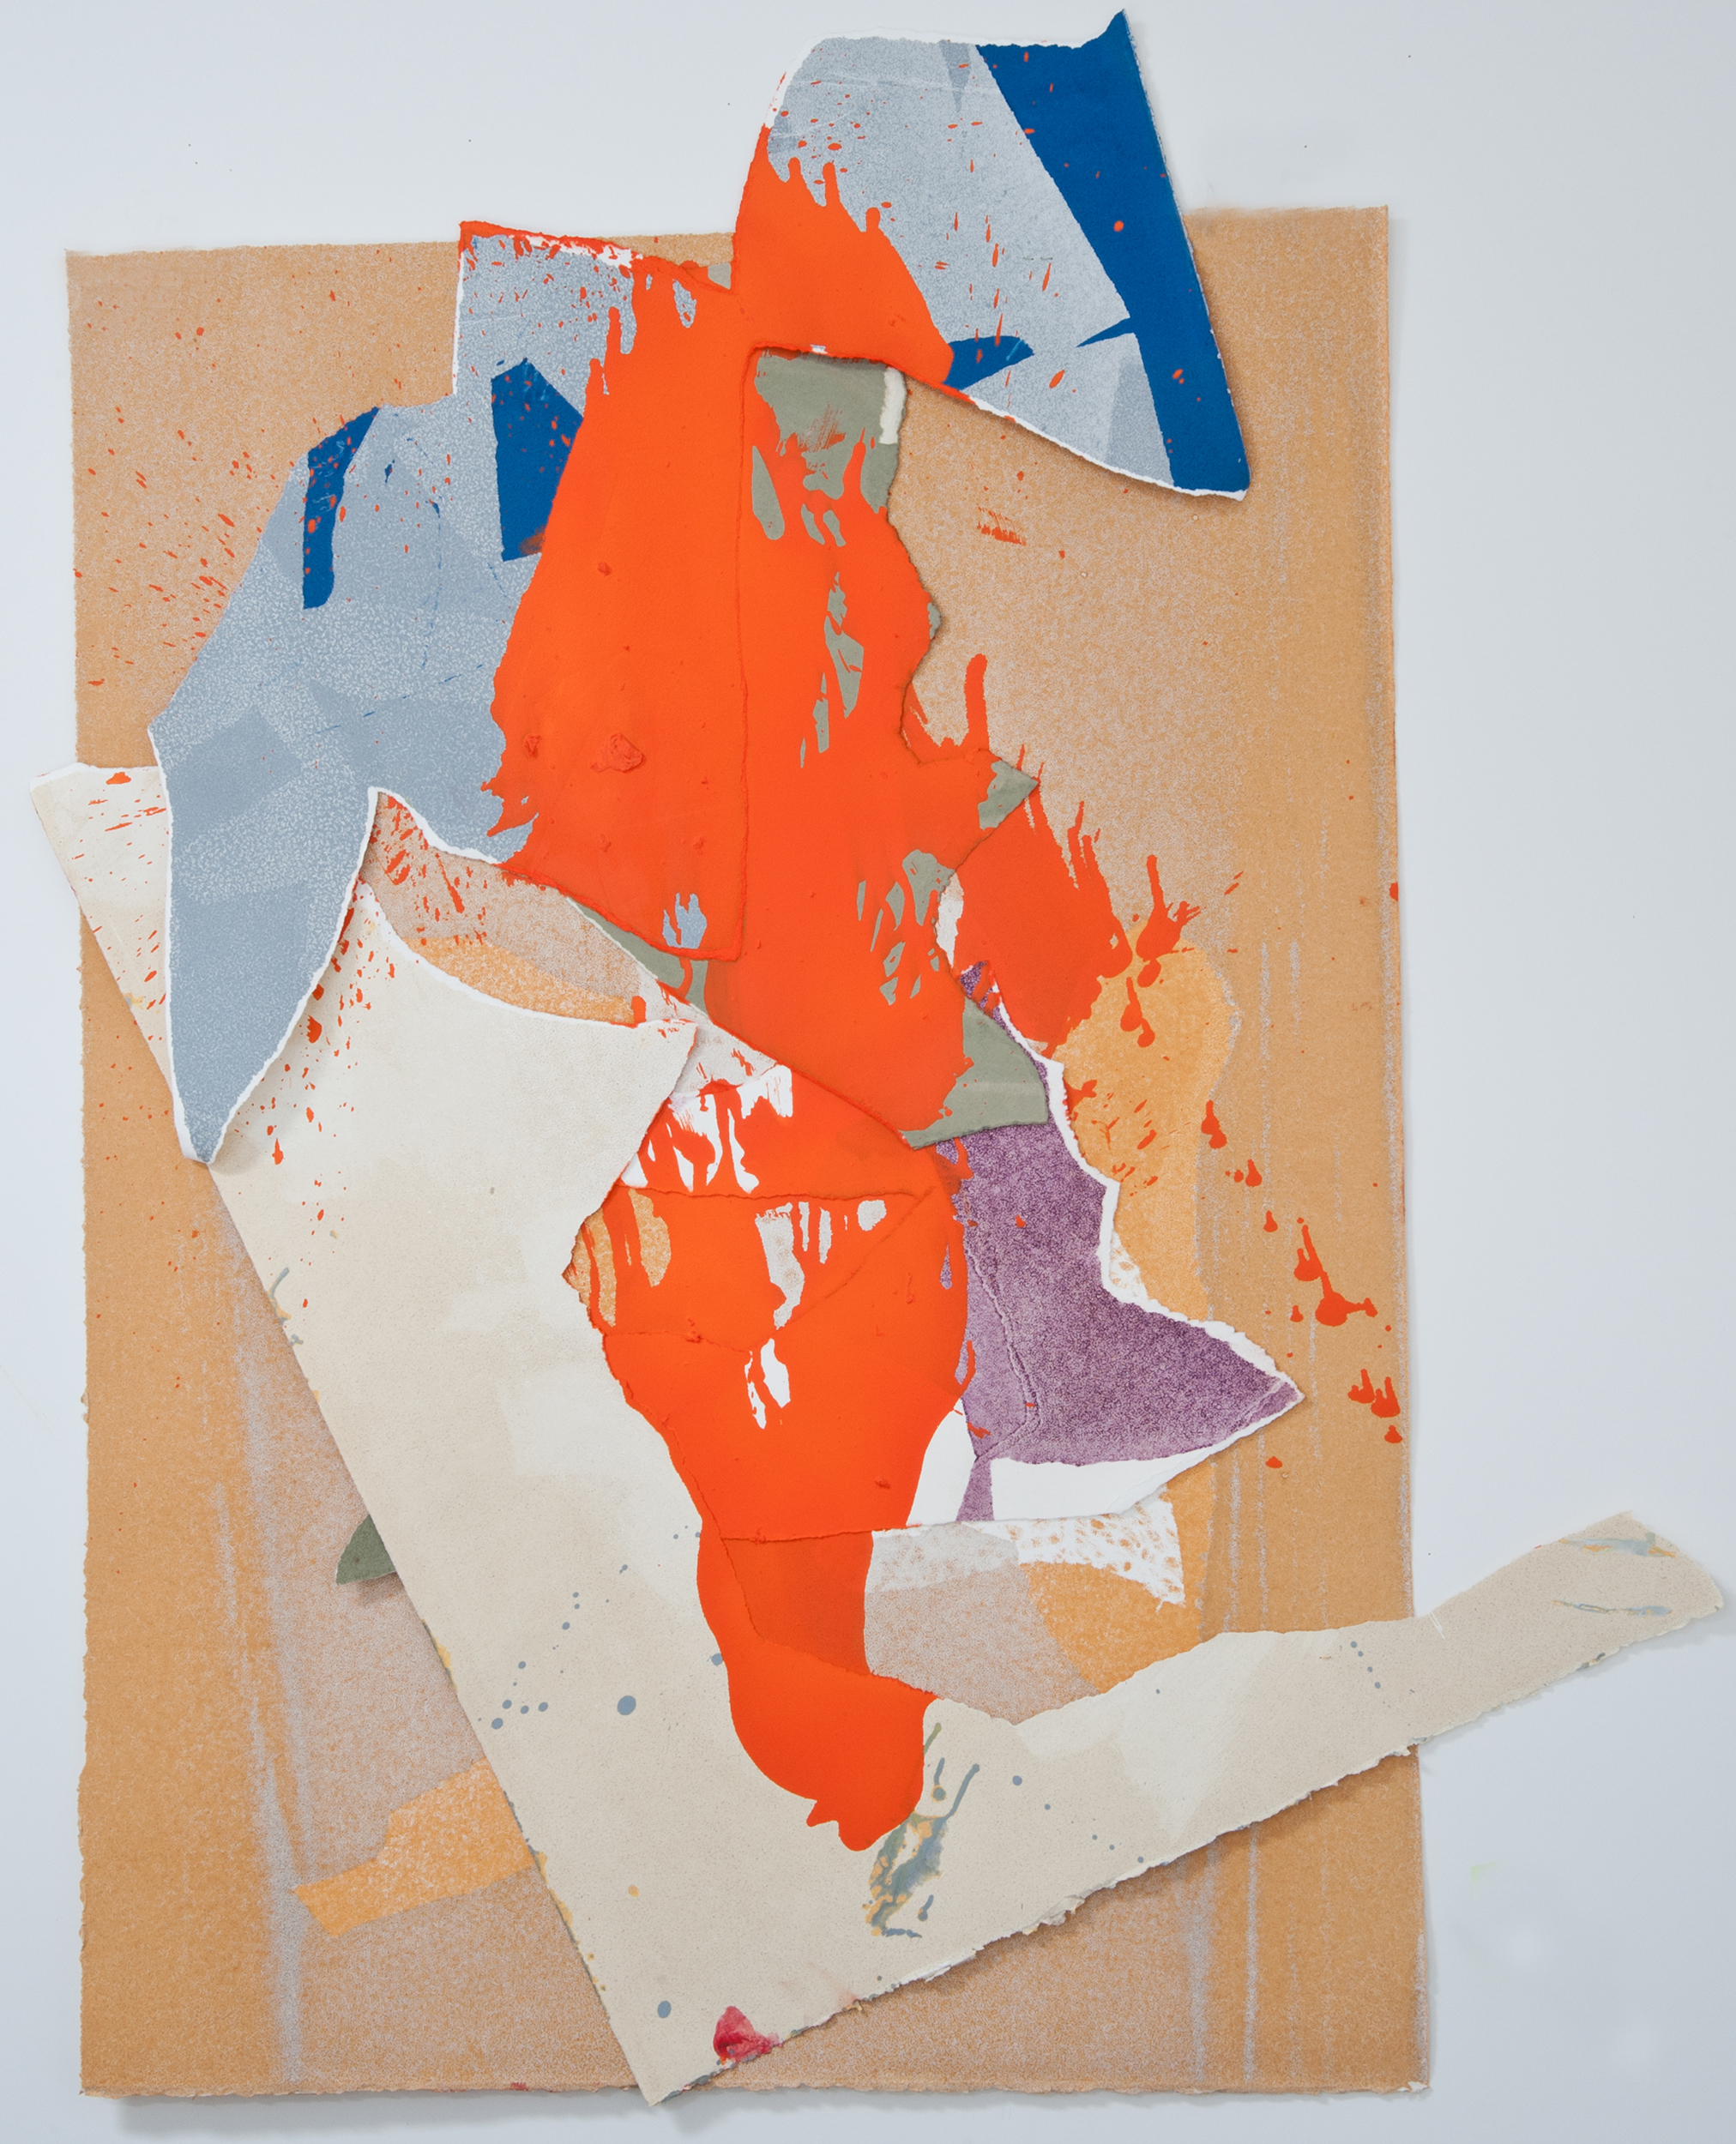 """Kay Harvey   """"About Ice Series 8"""" 2013. Collage, Oil on Paper. 44 x 34 x 9"""""""